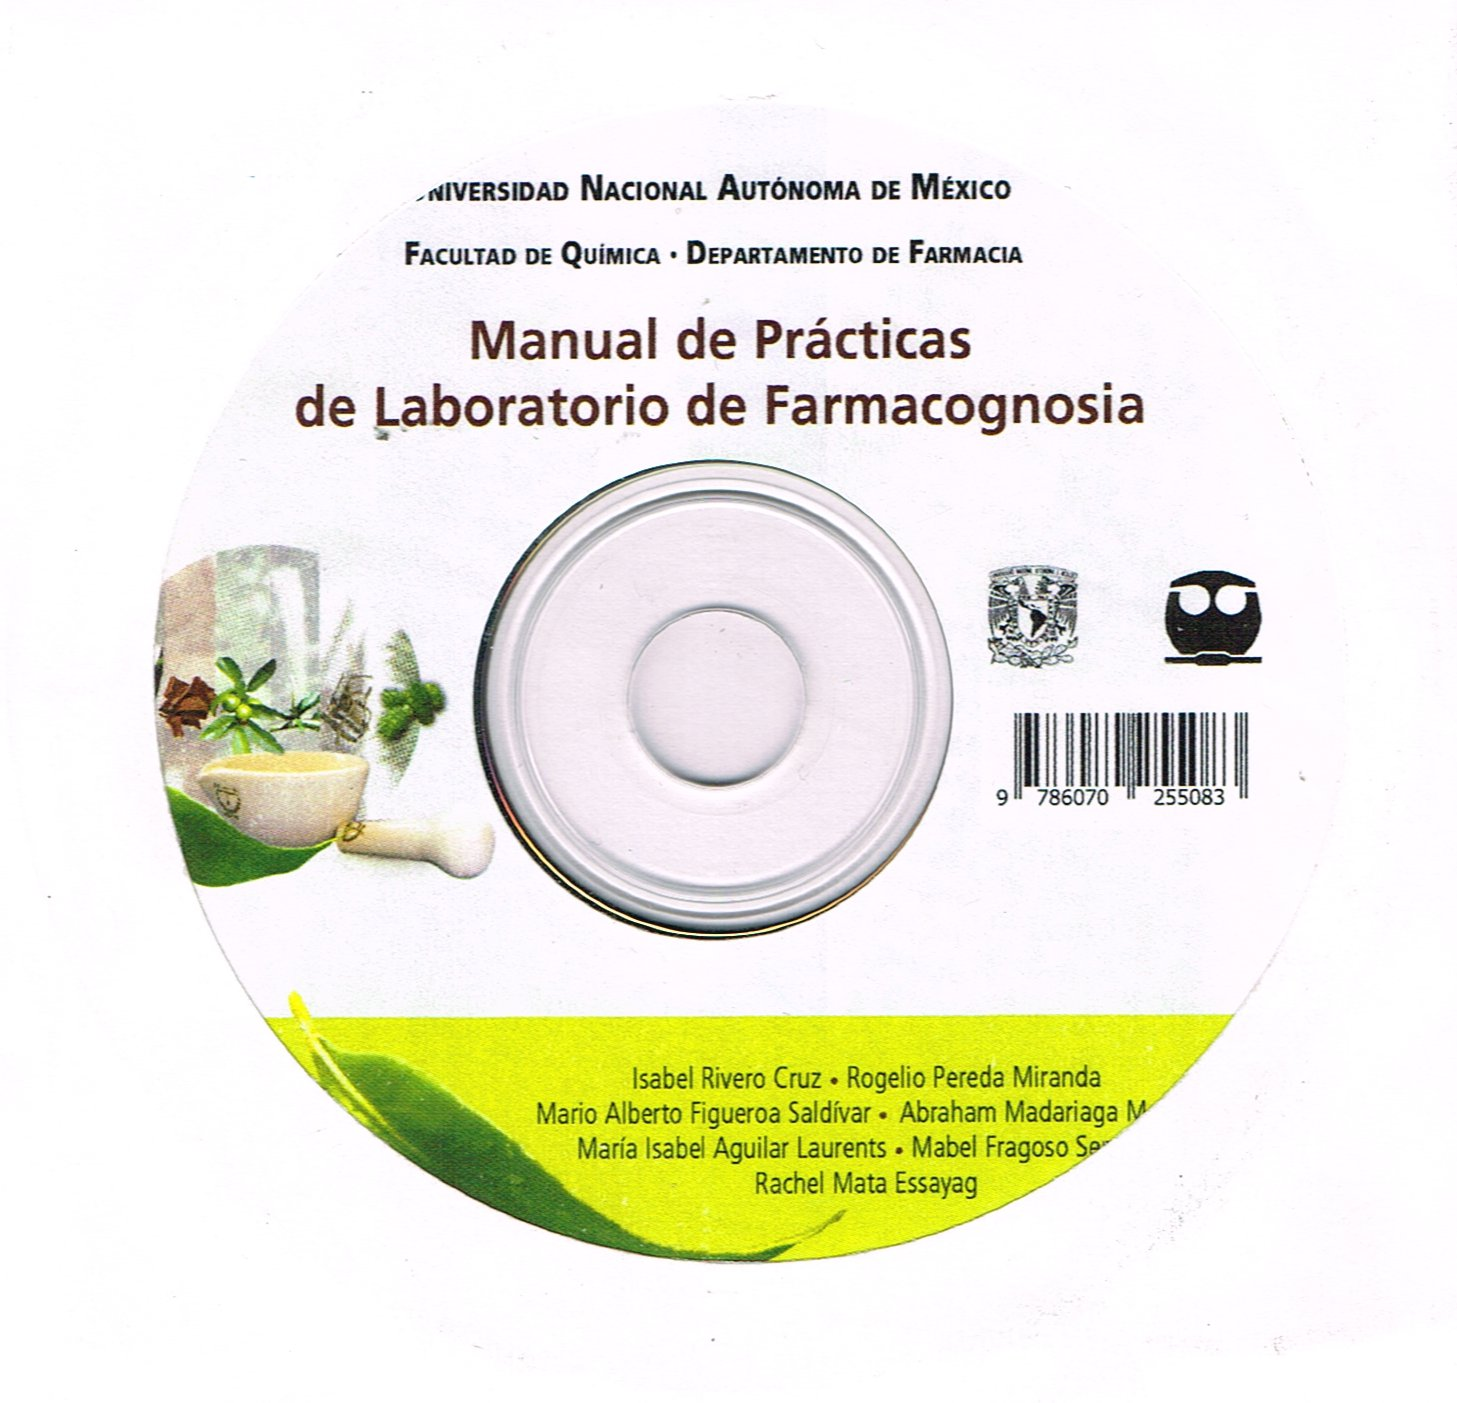 Manual de prácticas de laboratorio de farmacognosia